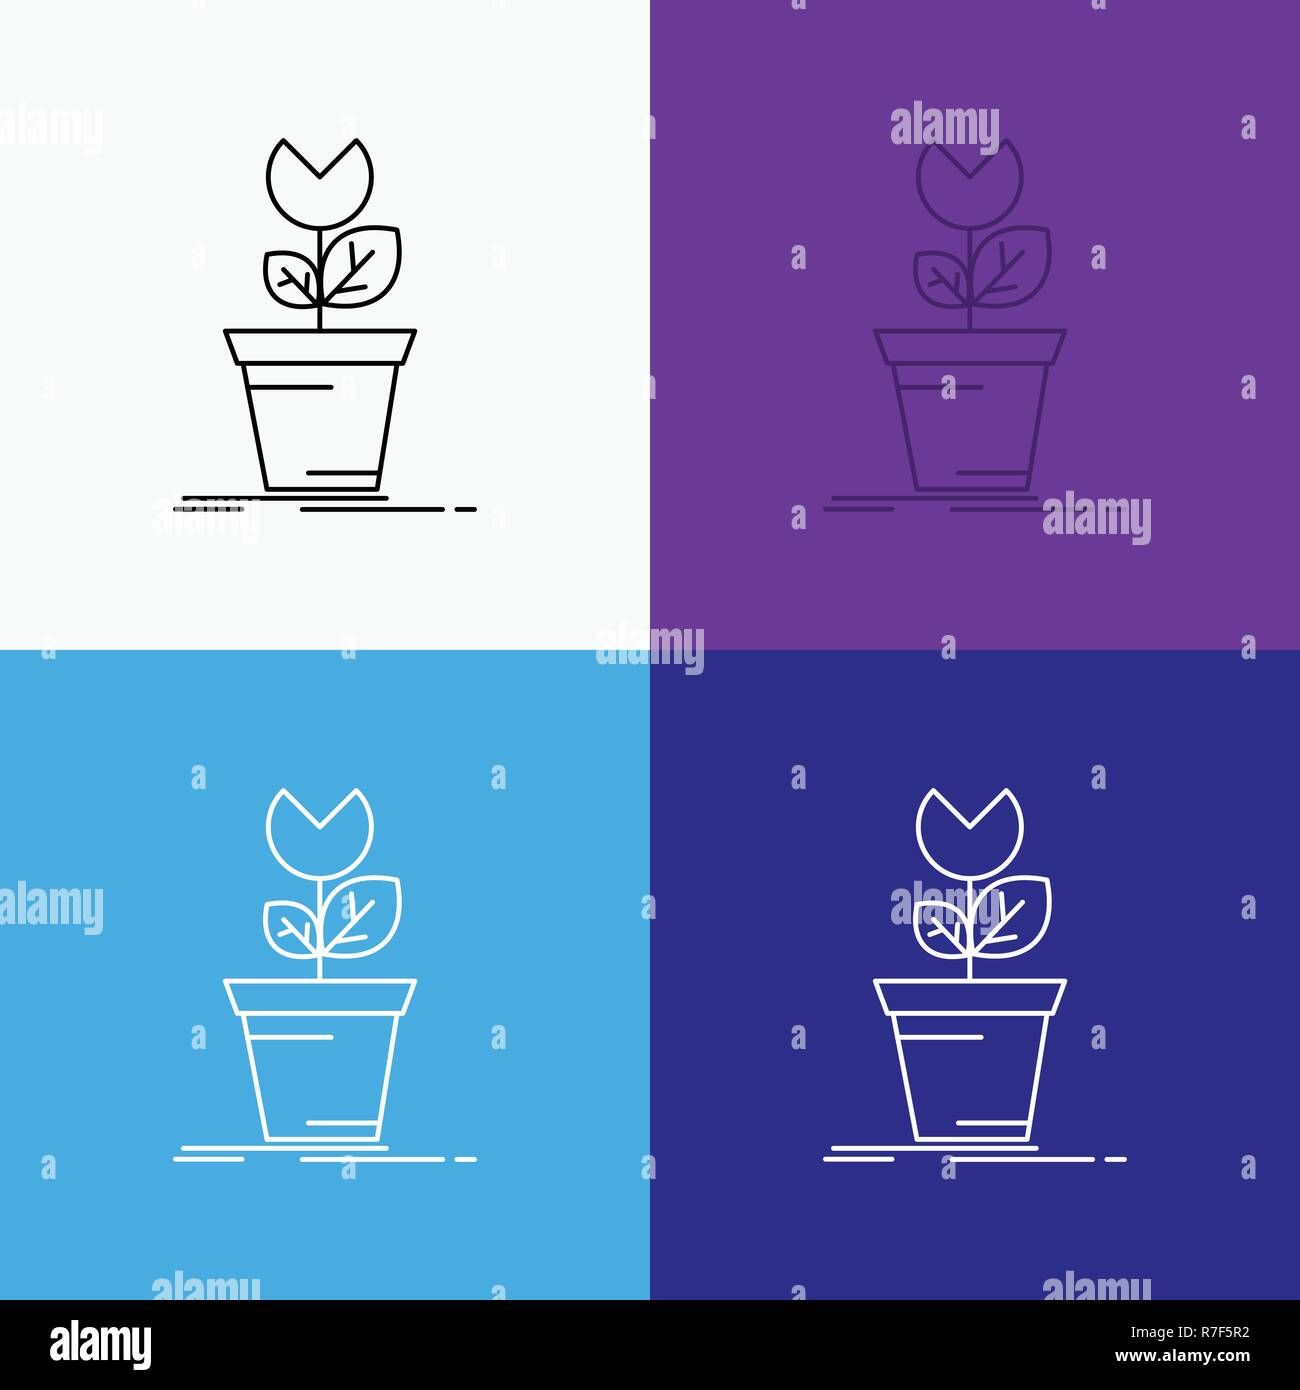 Adventure Game Mario Obstacle Plant Icon Over Various